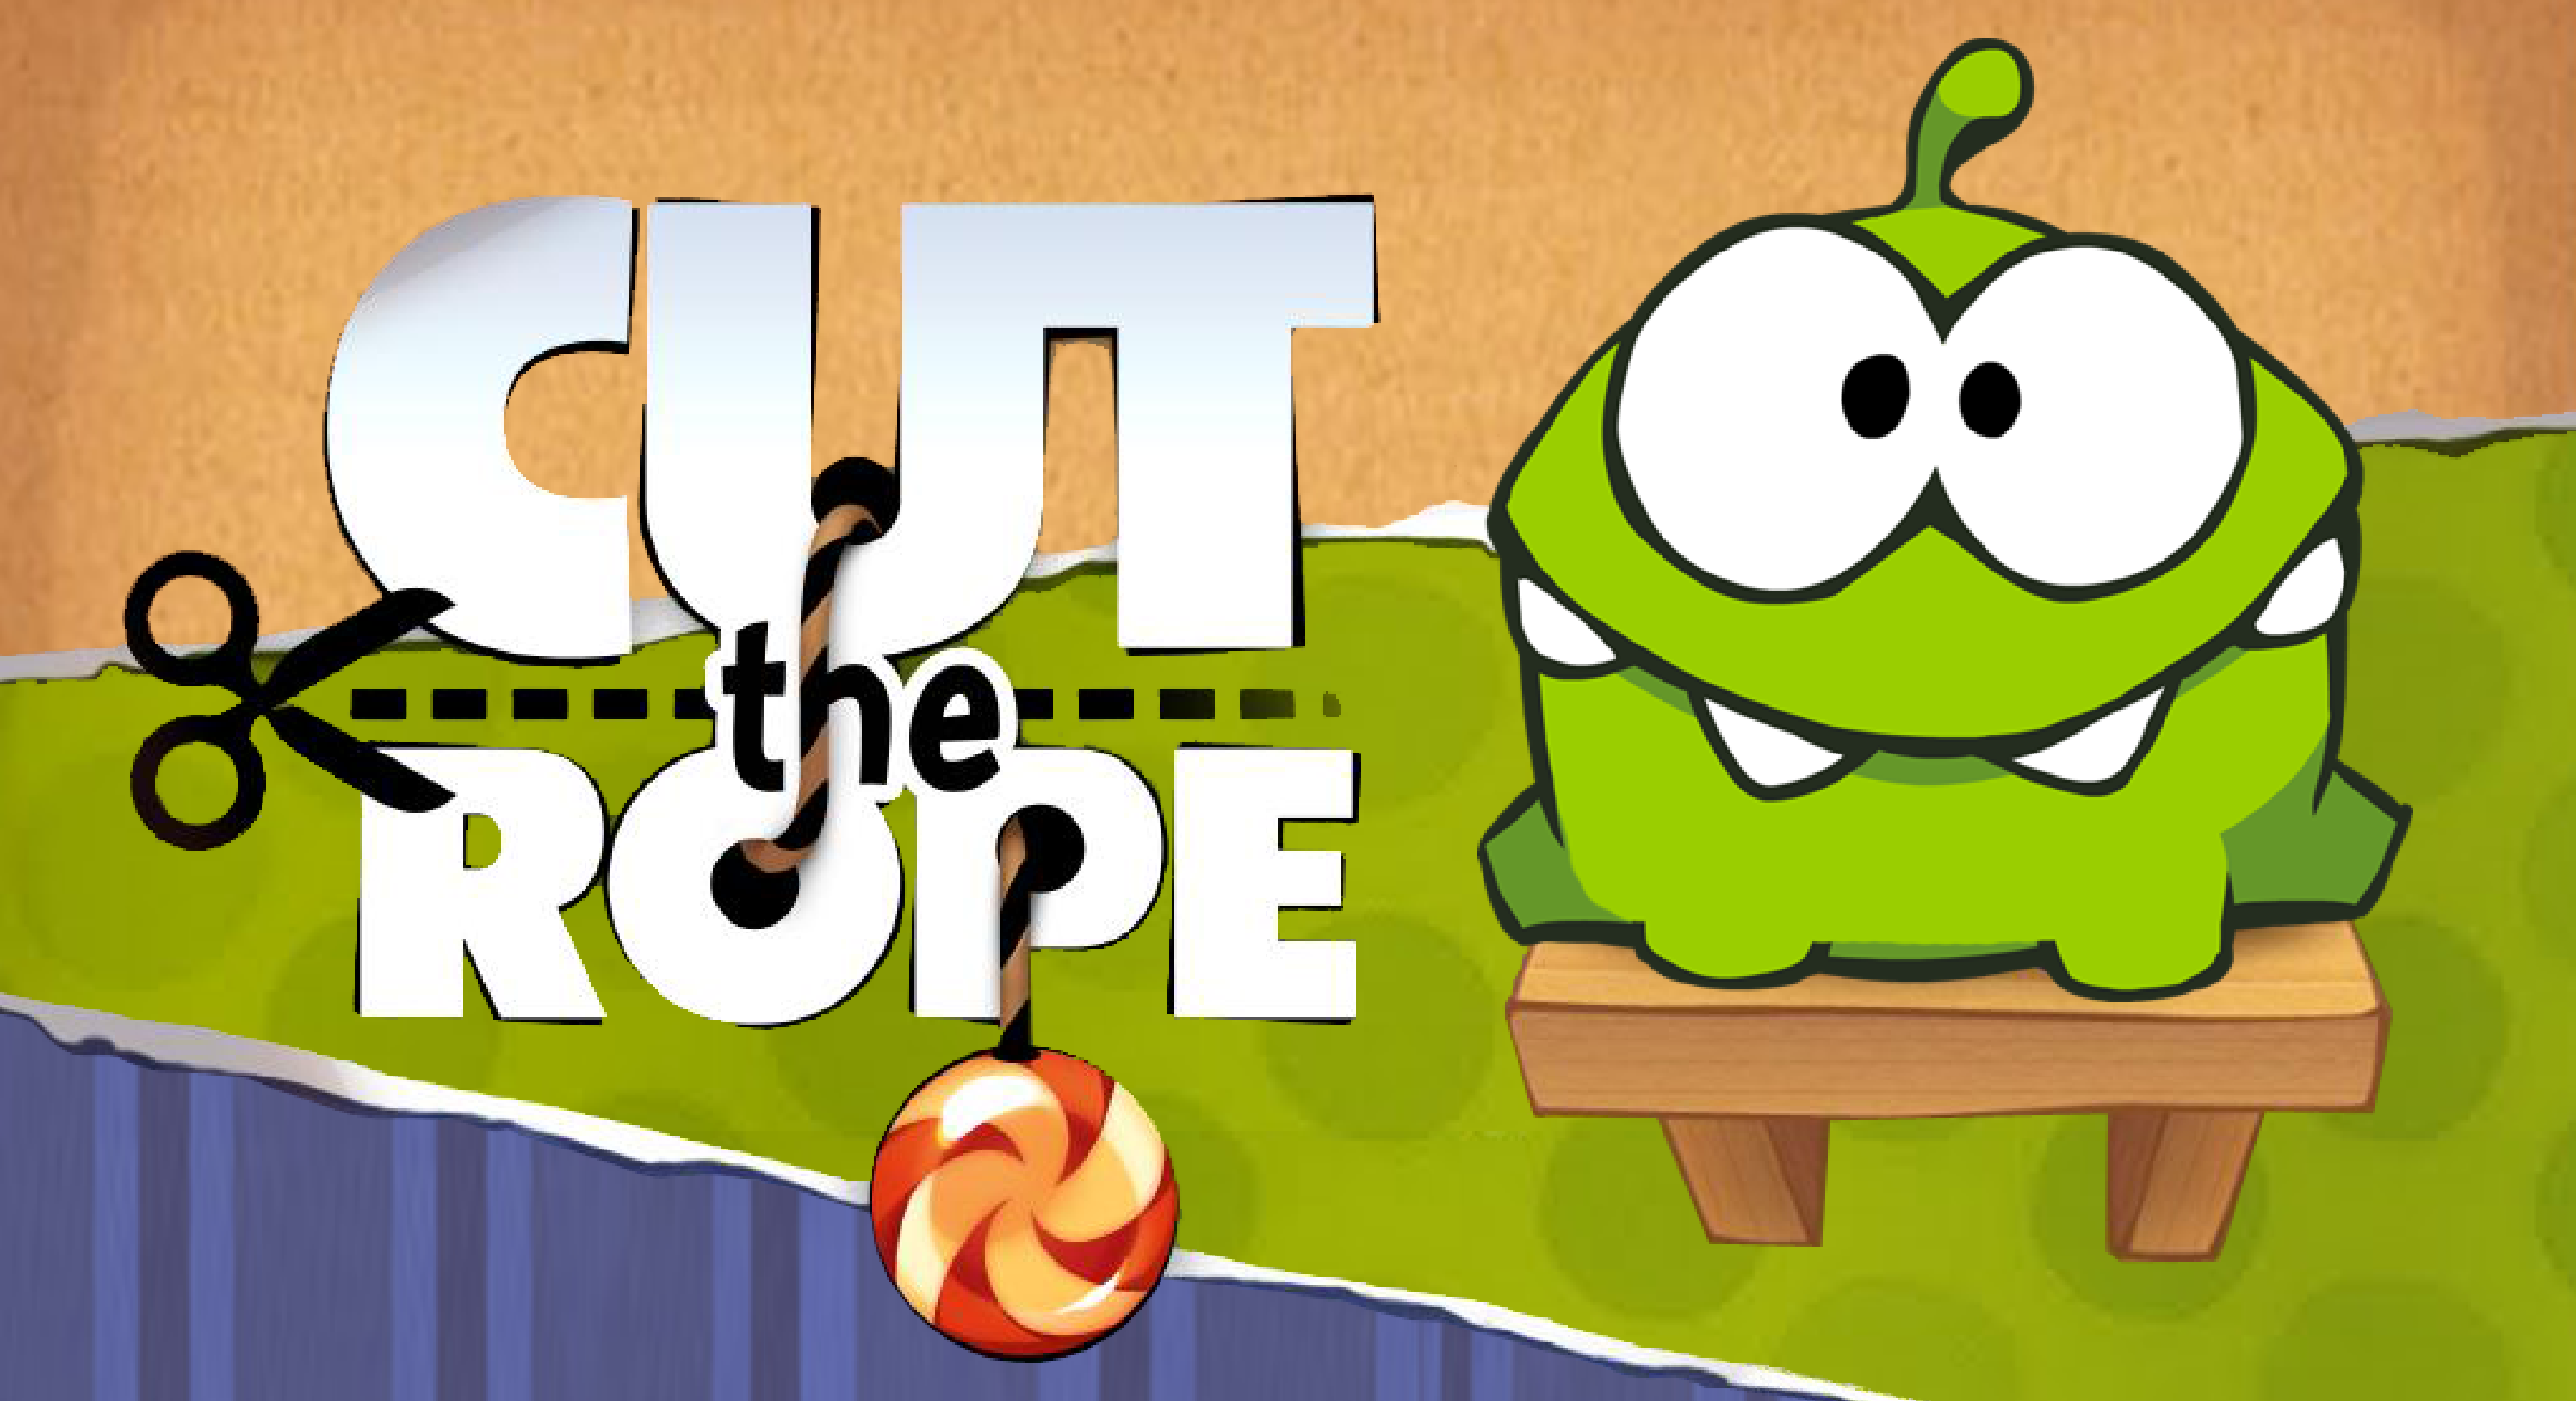 cut-the-rope-2.png